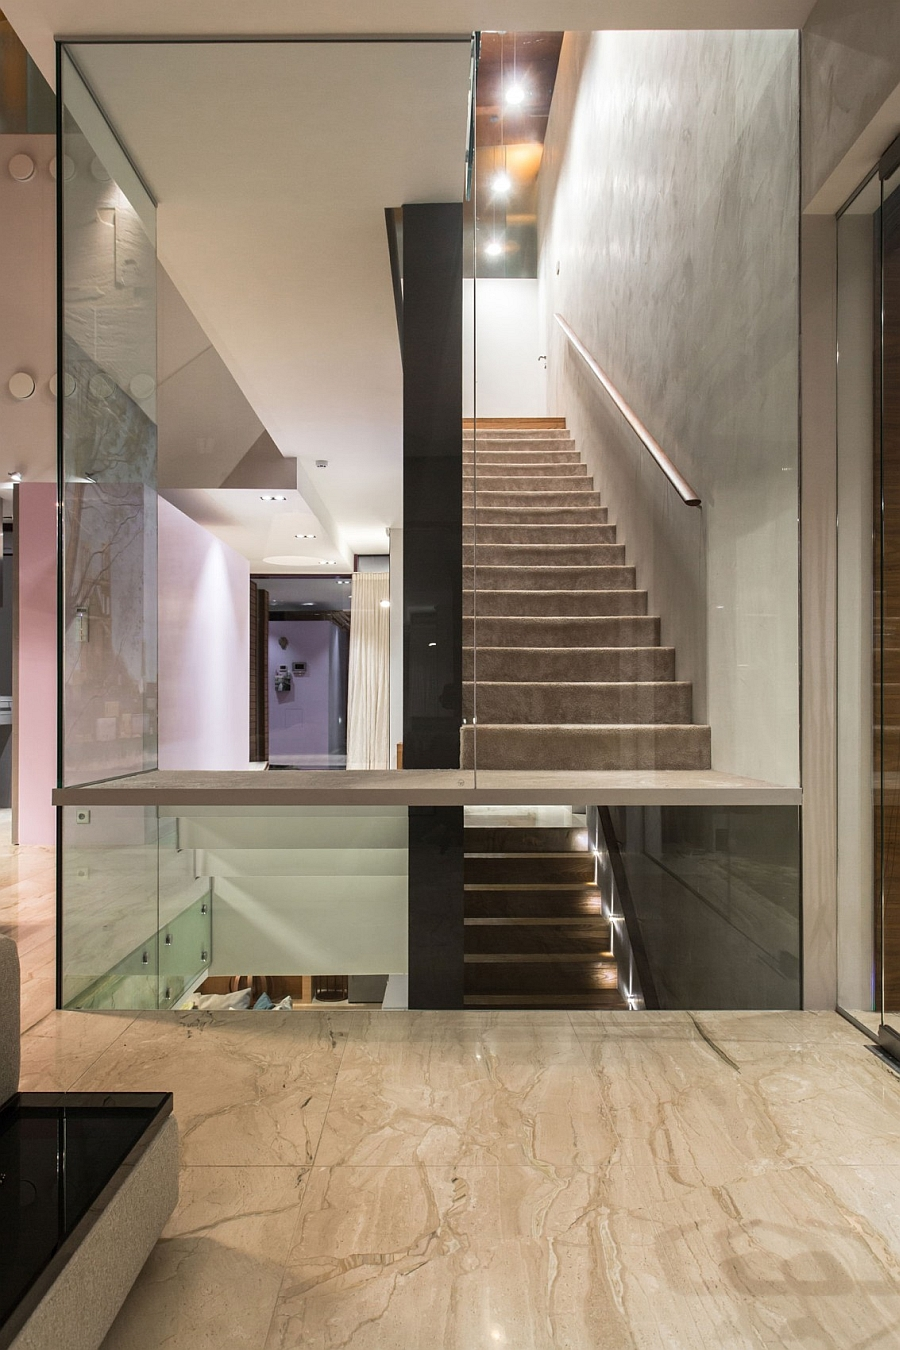 Stylish staircase connects the various levels of the home seamlessly